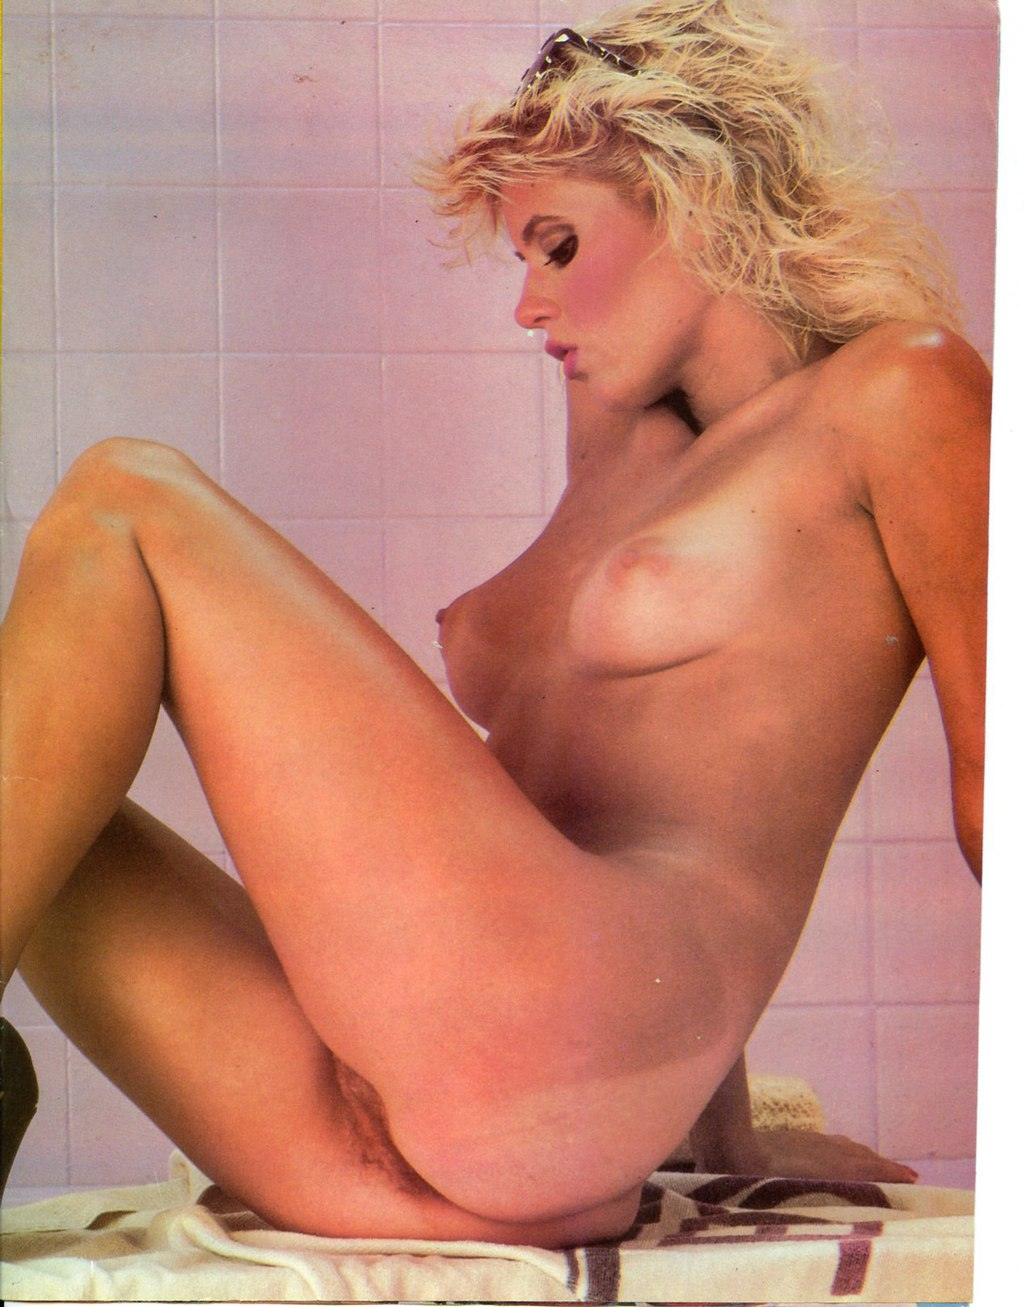 Ginger Lynn Allen 7 photos #10534